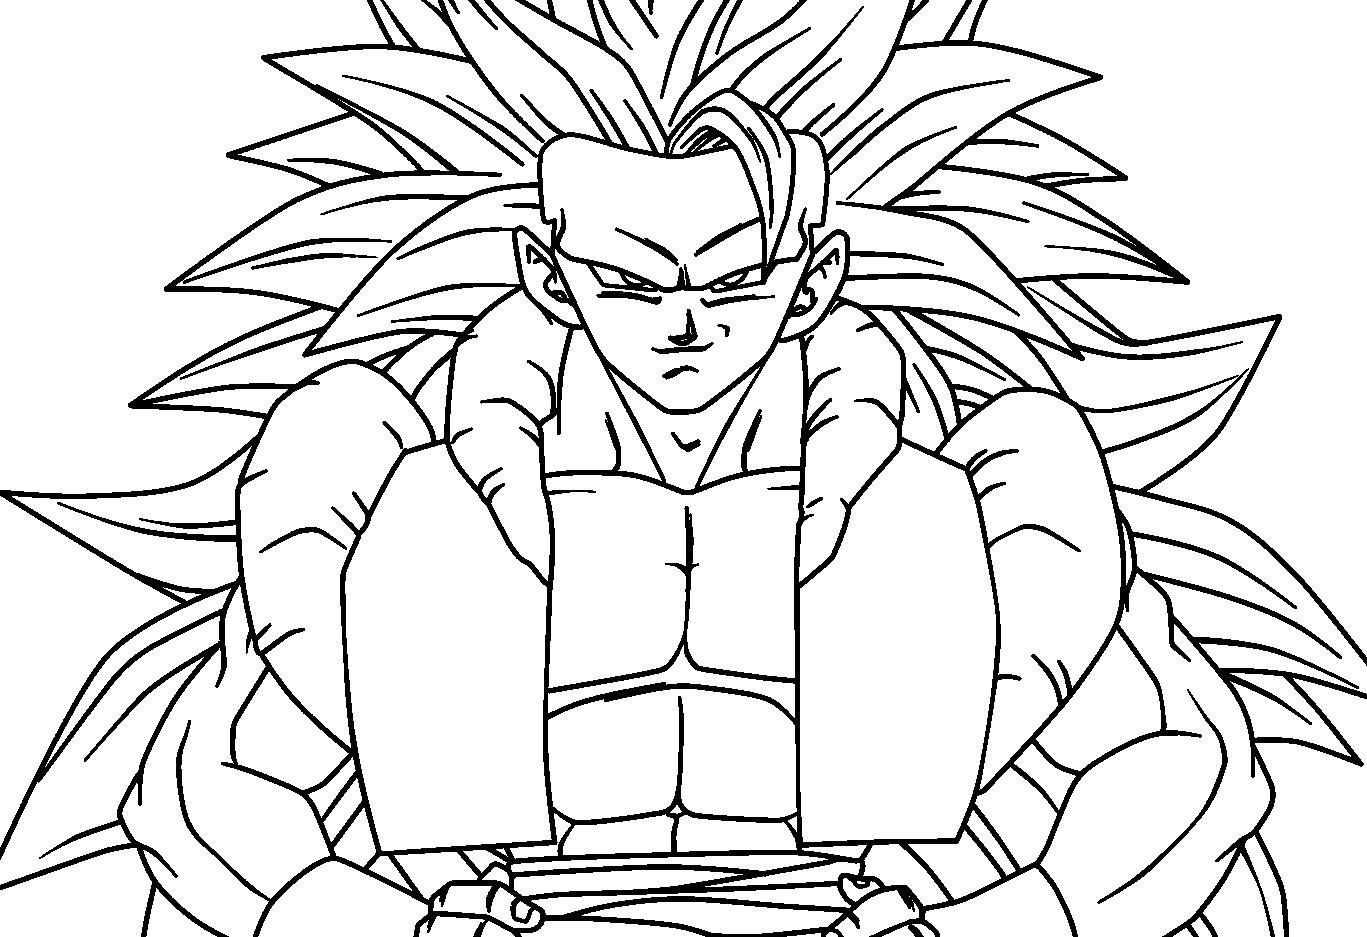 Dragon Ball Z Coloring Pages at GetDrawings.com | Free for ...